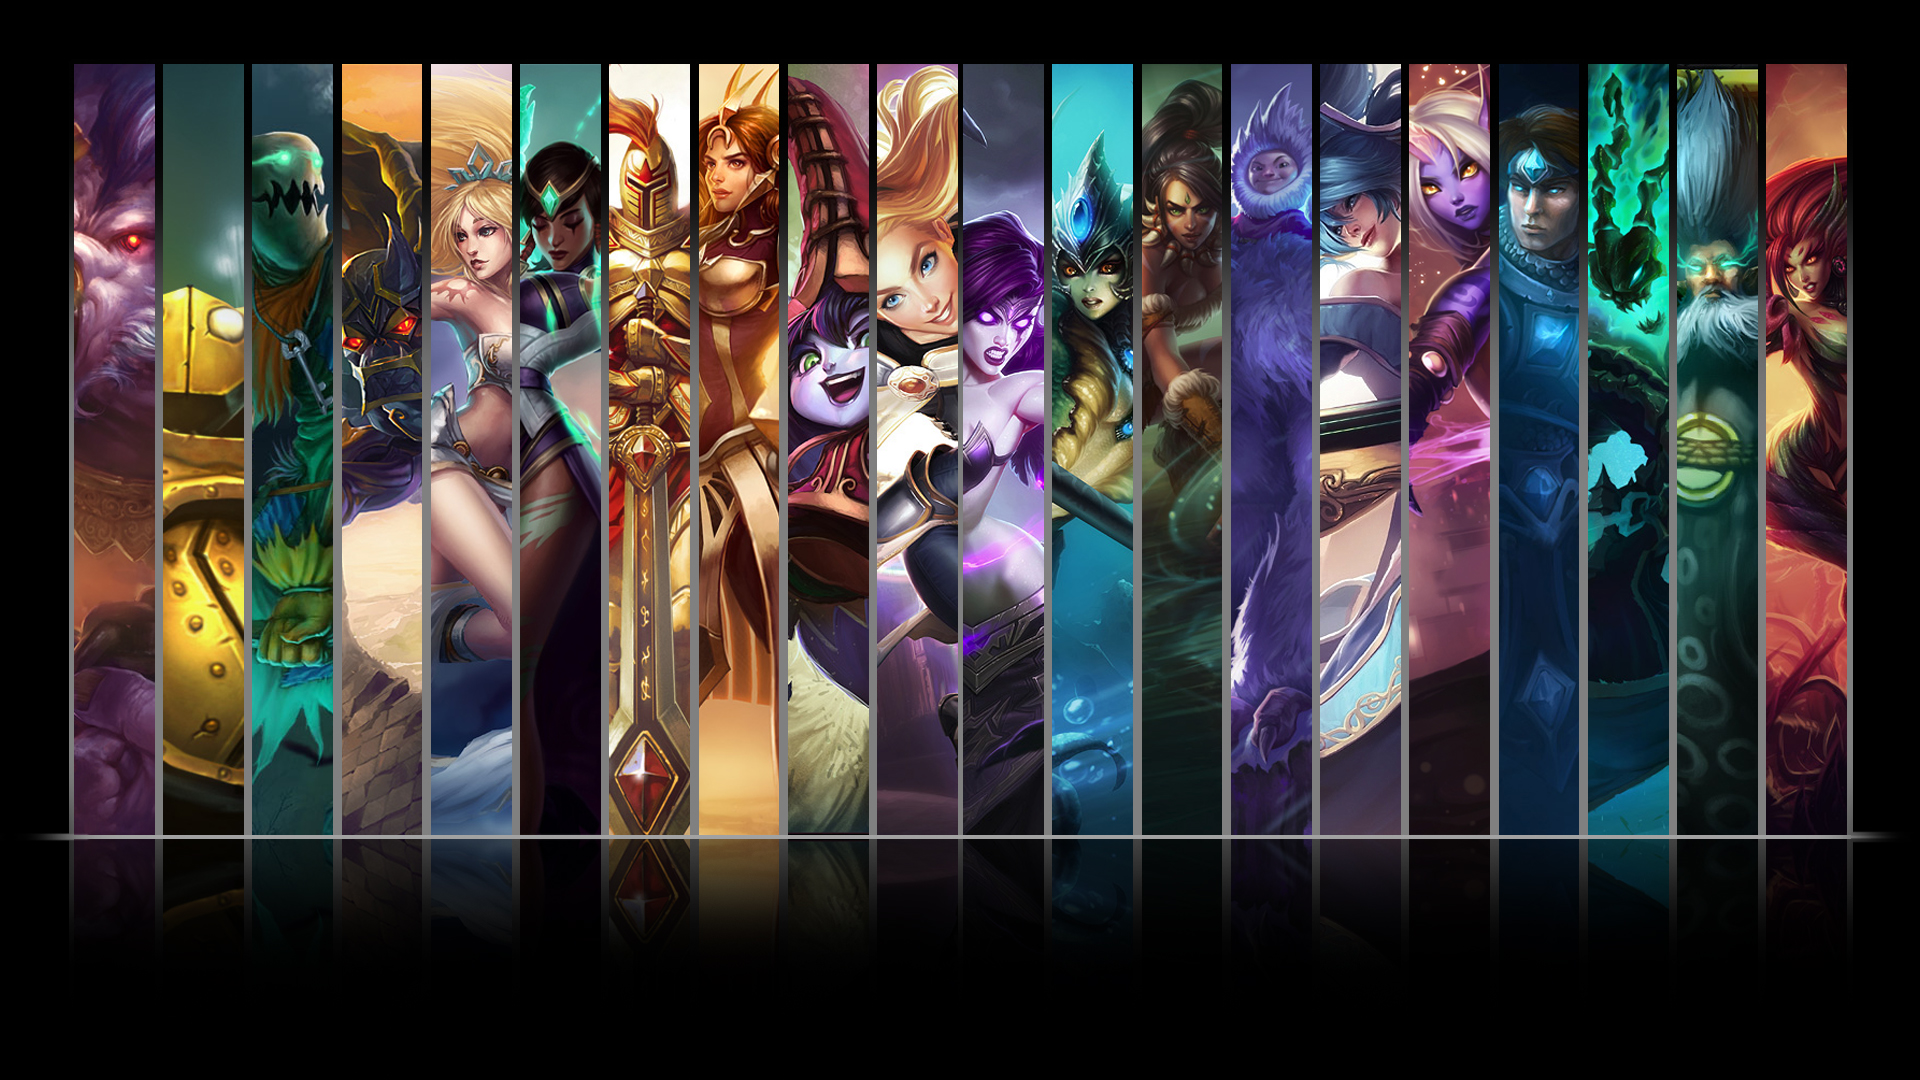 Wallpaper Do Lol League Of Legends Support Champions Hd Wallpaper Backgrounds Download